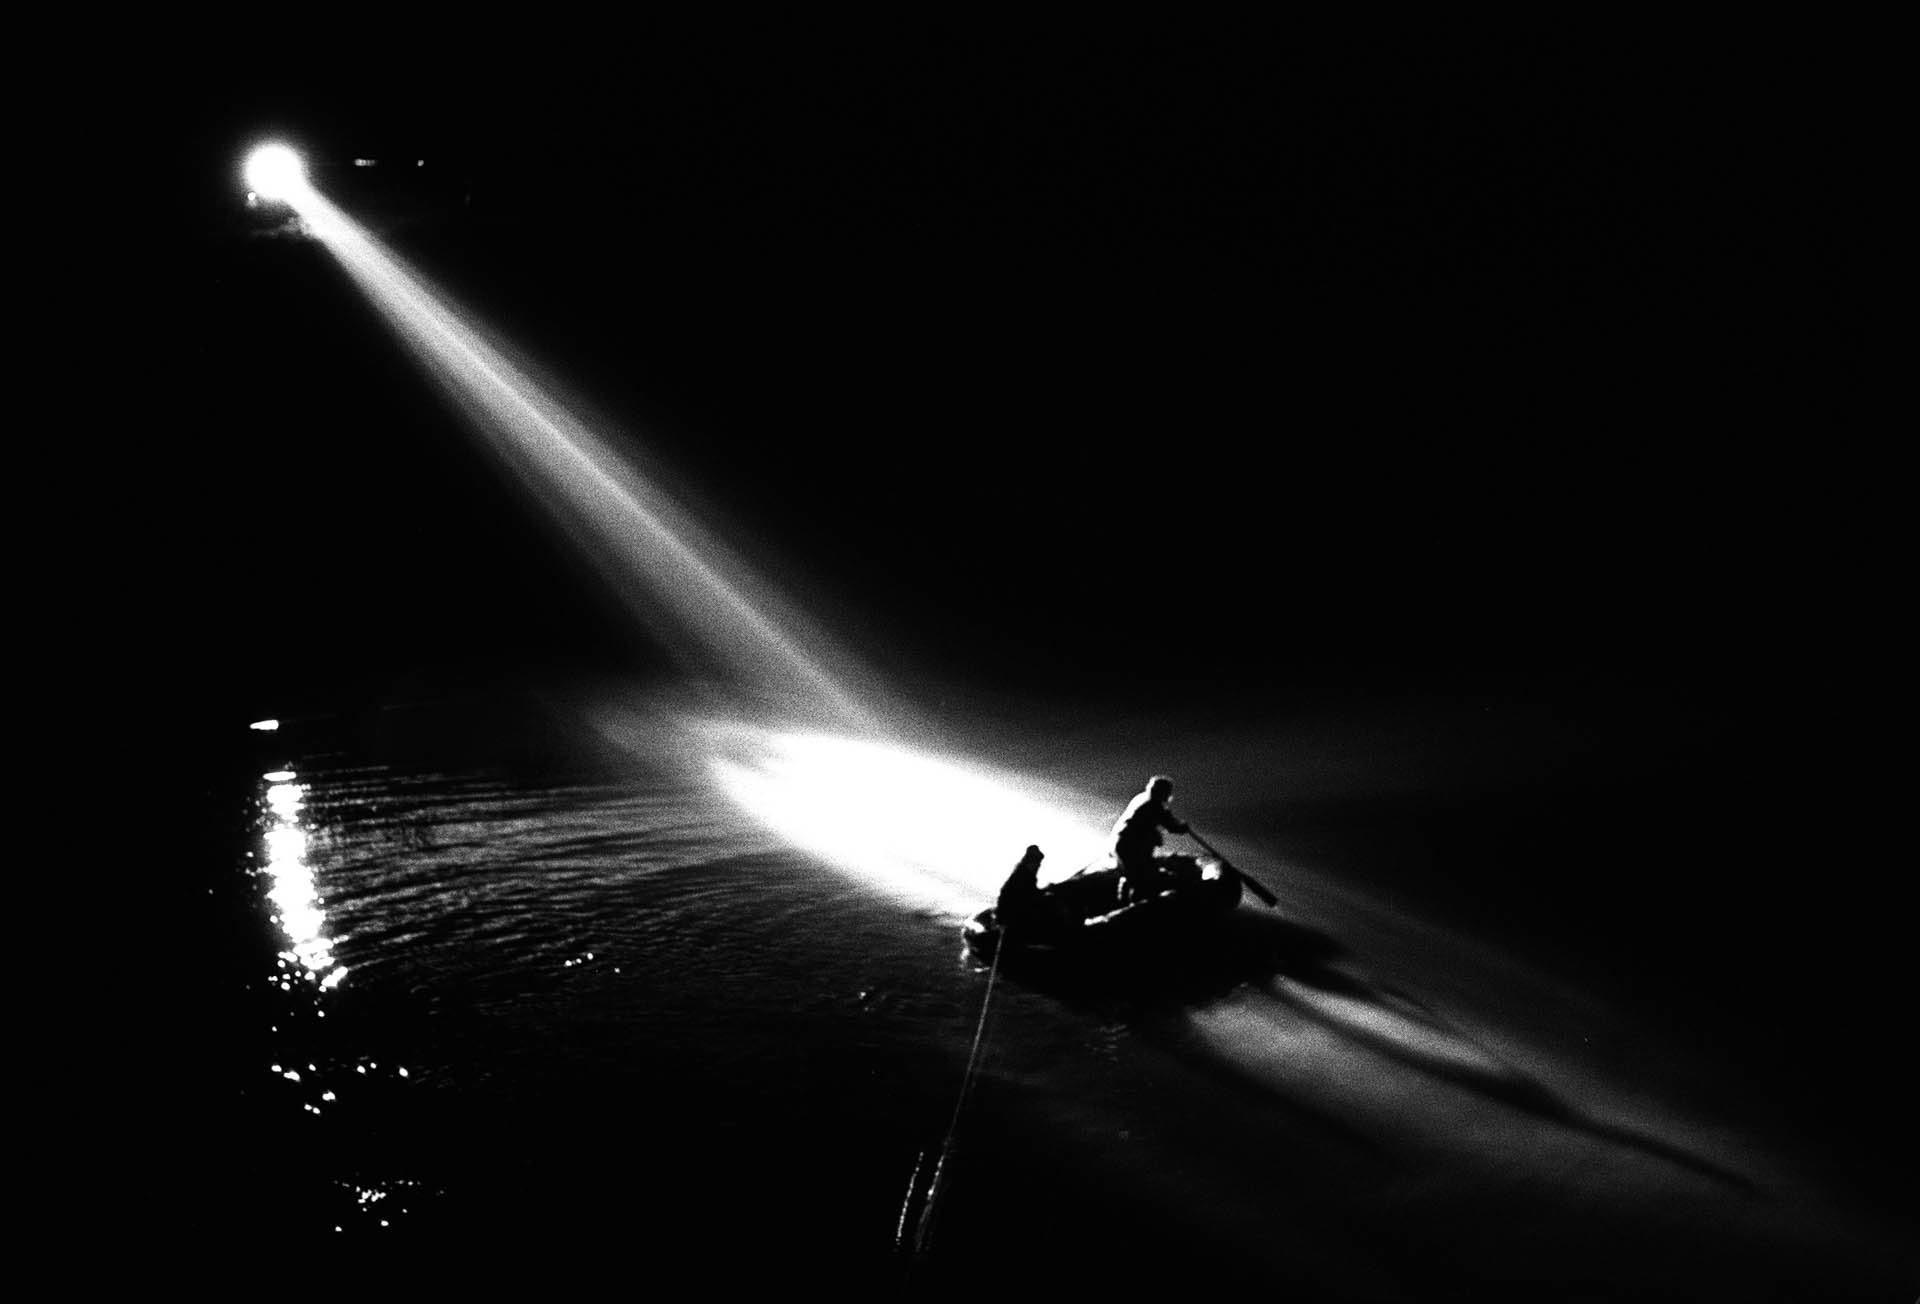 Rome, Italy - 10 May 1978 The police followed many tracks to find Aldo Moro, in the picture the night search in Duchessa Lake.